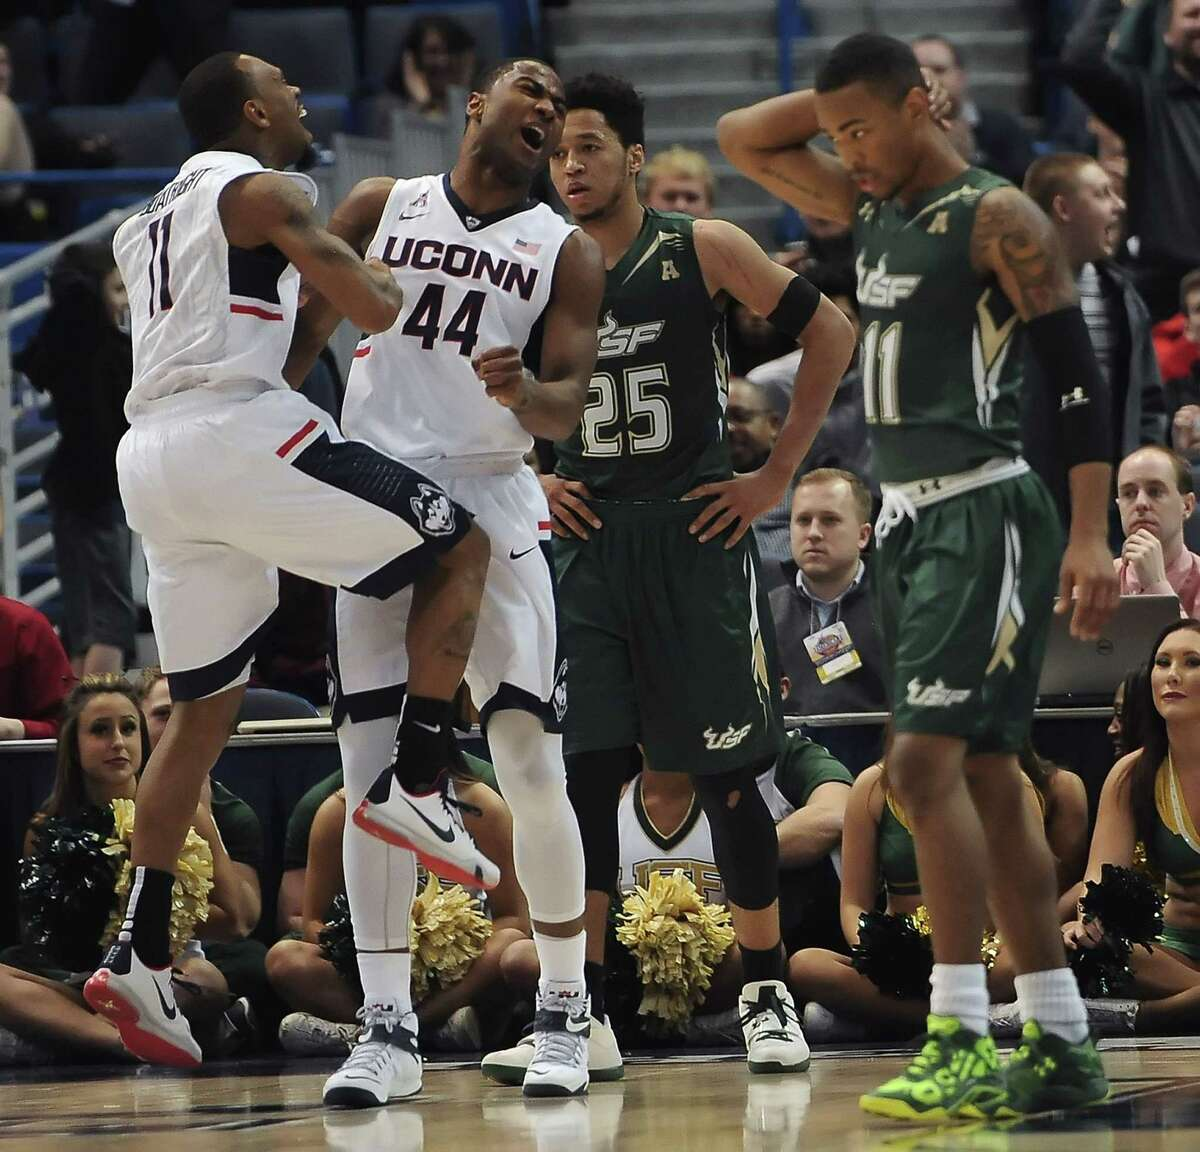 UConn's Ryan Boatright, left, and Rodney Purvis react as South Florida's Troy Holston Jr., center right, and Anthony Collins look on during the first half Thursday.